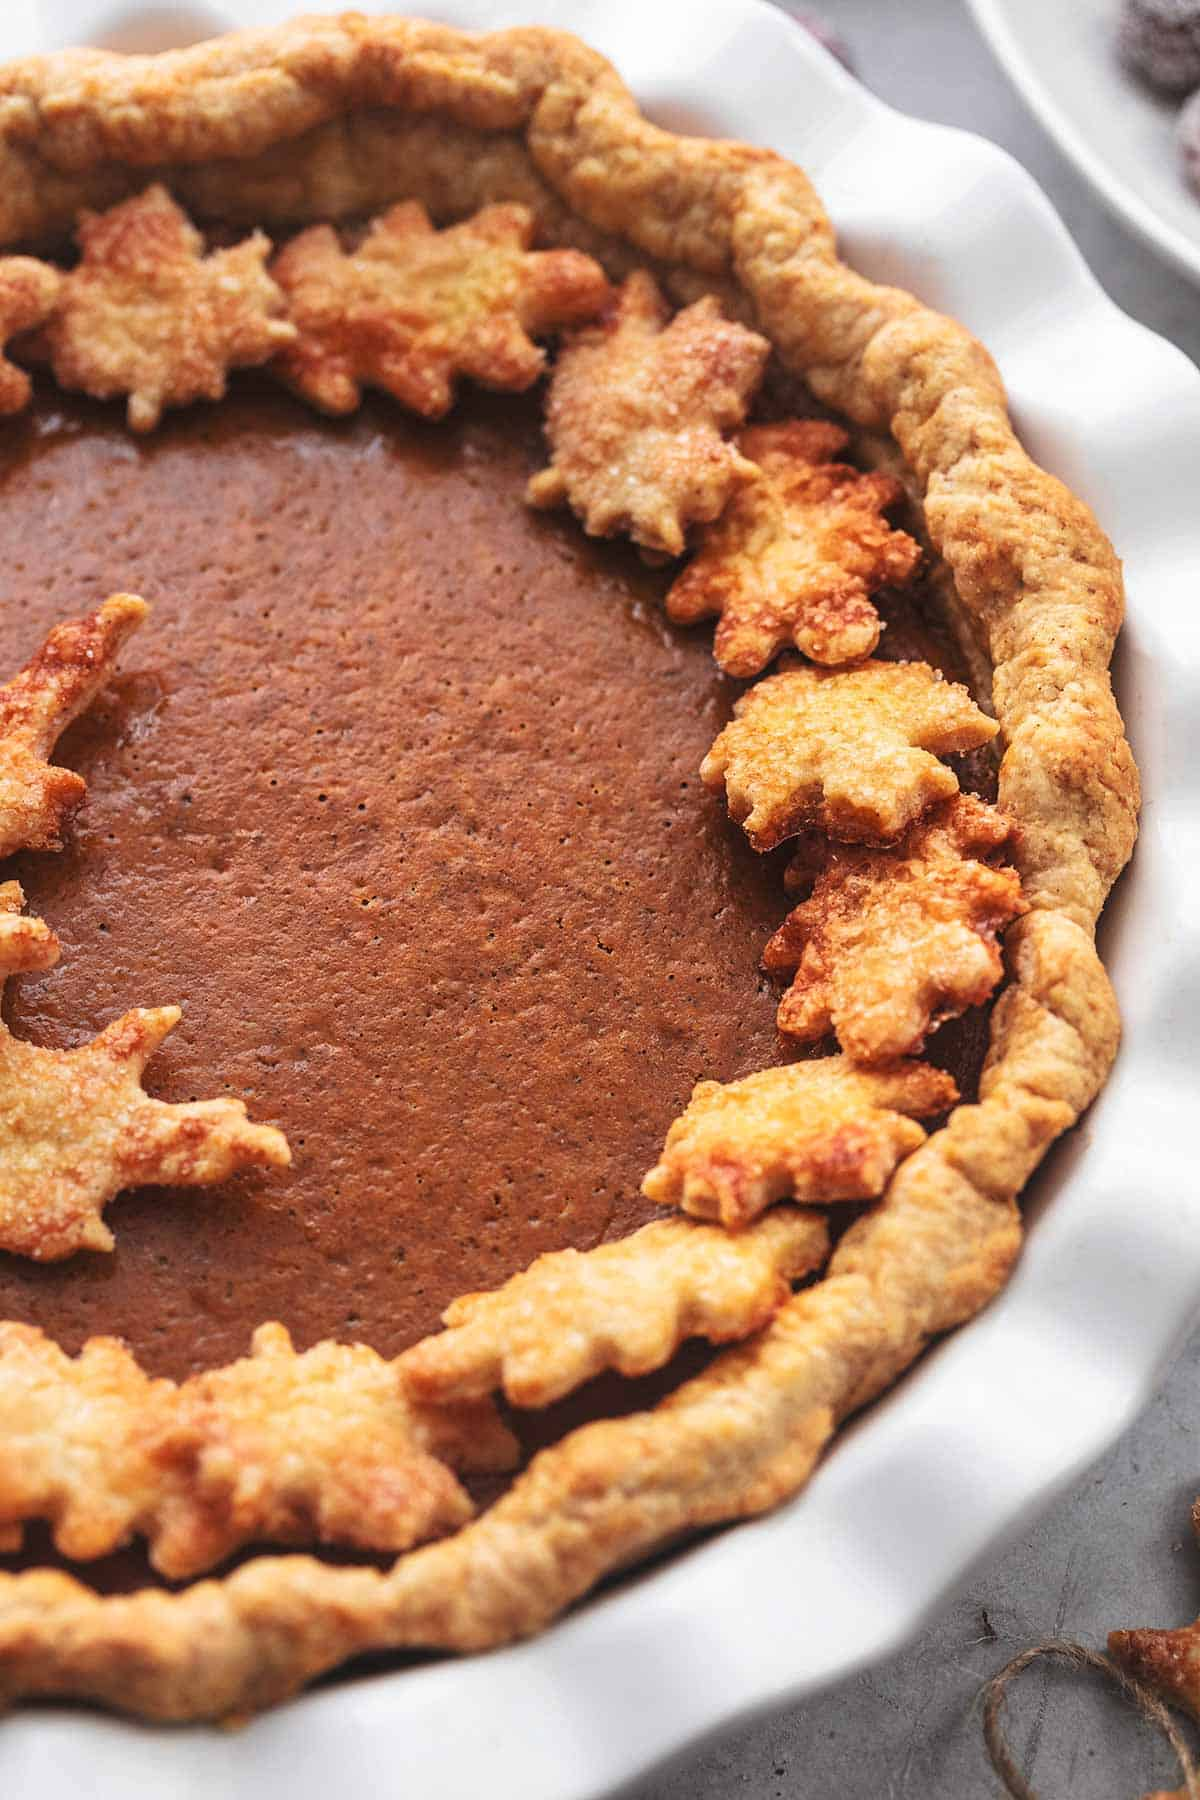 up close view of pie with brown filling and golden crust with small crust leaves